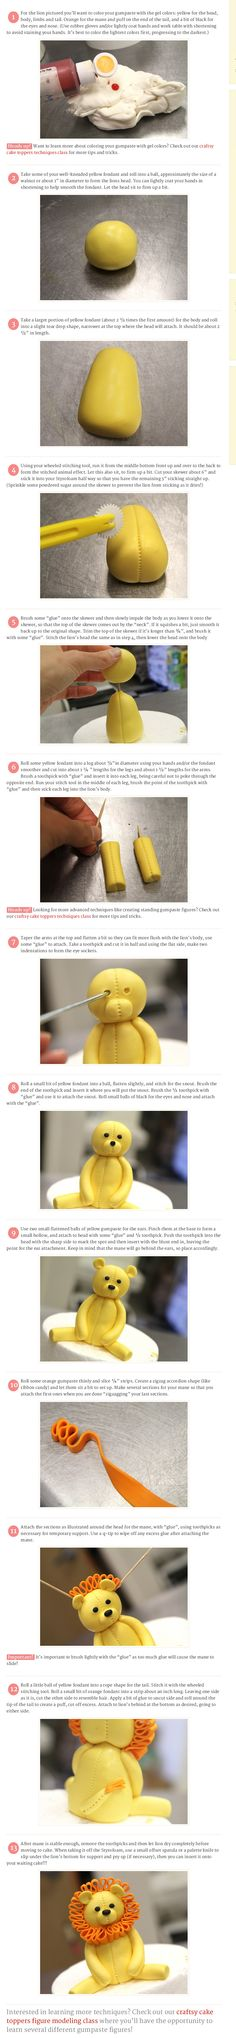 Tutorial: How to make a cute lion cake topper!  Interesting in learning more about creating cake topper figures?  Check out our craftsy class online at http://university.pinkcakebox.com/classes/cake-topper-techniques-class/